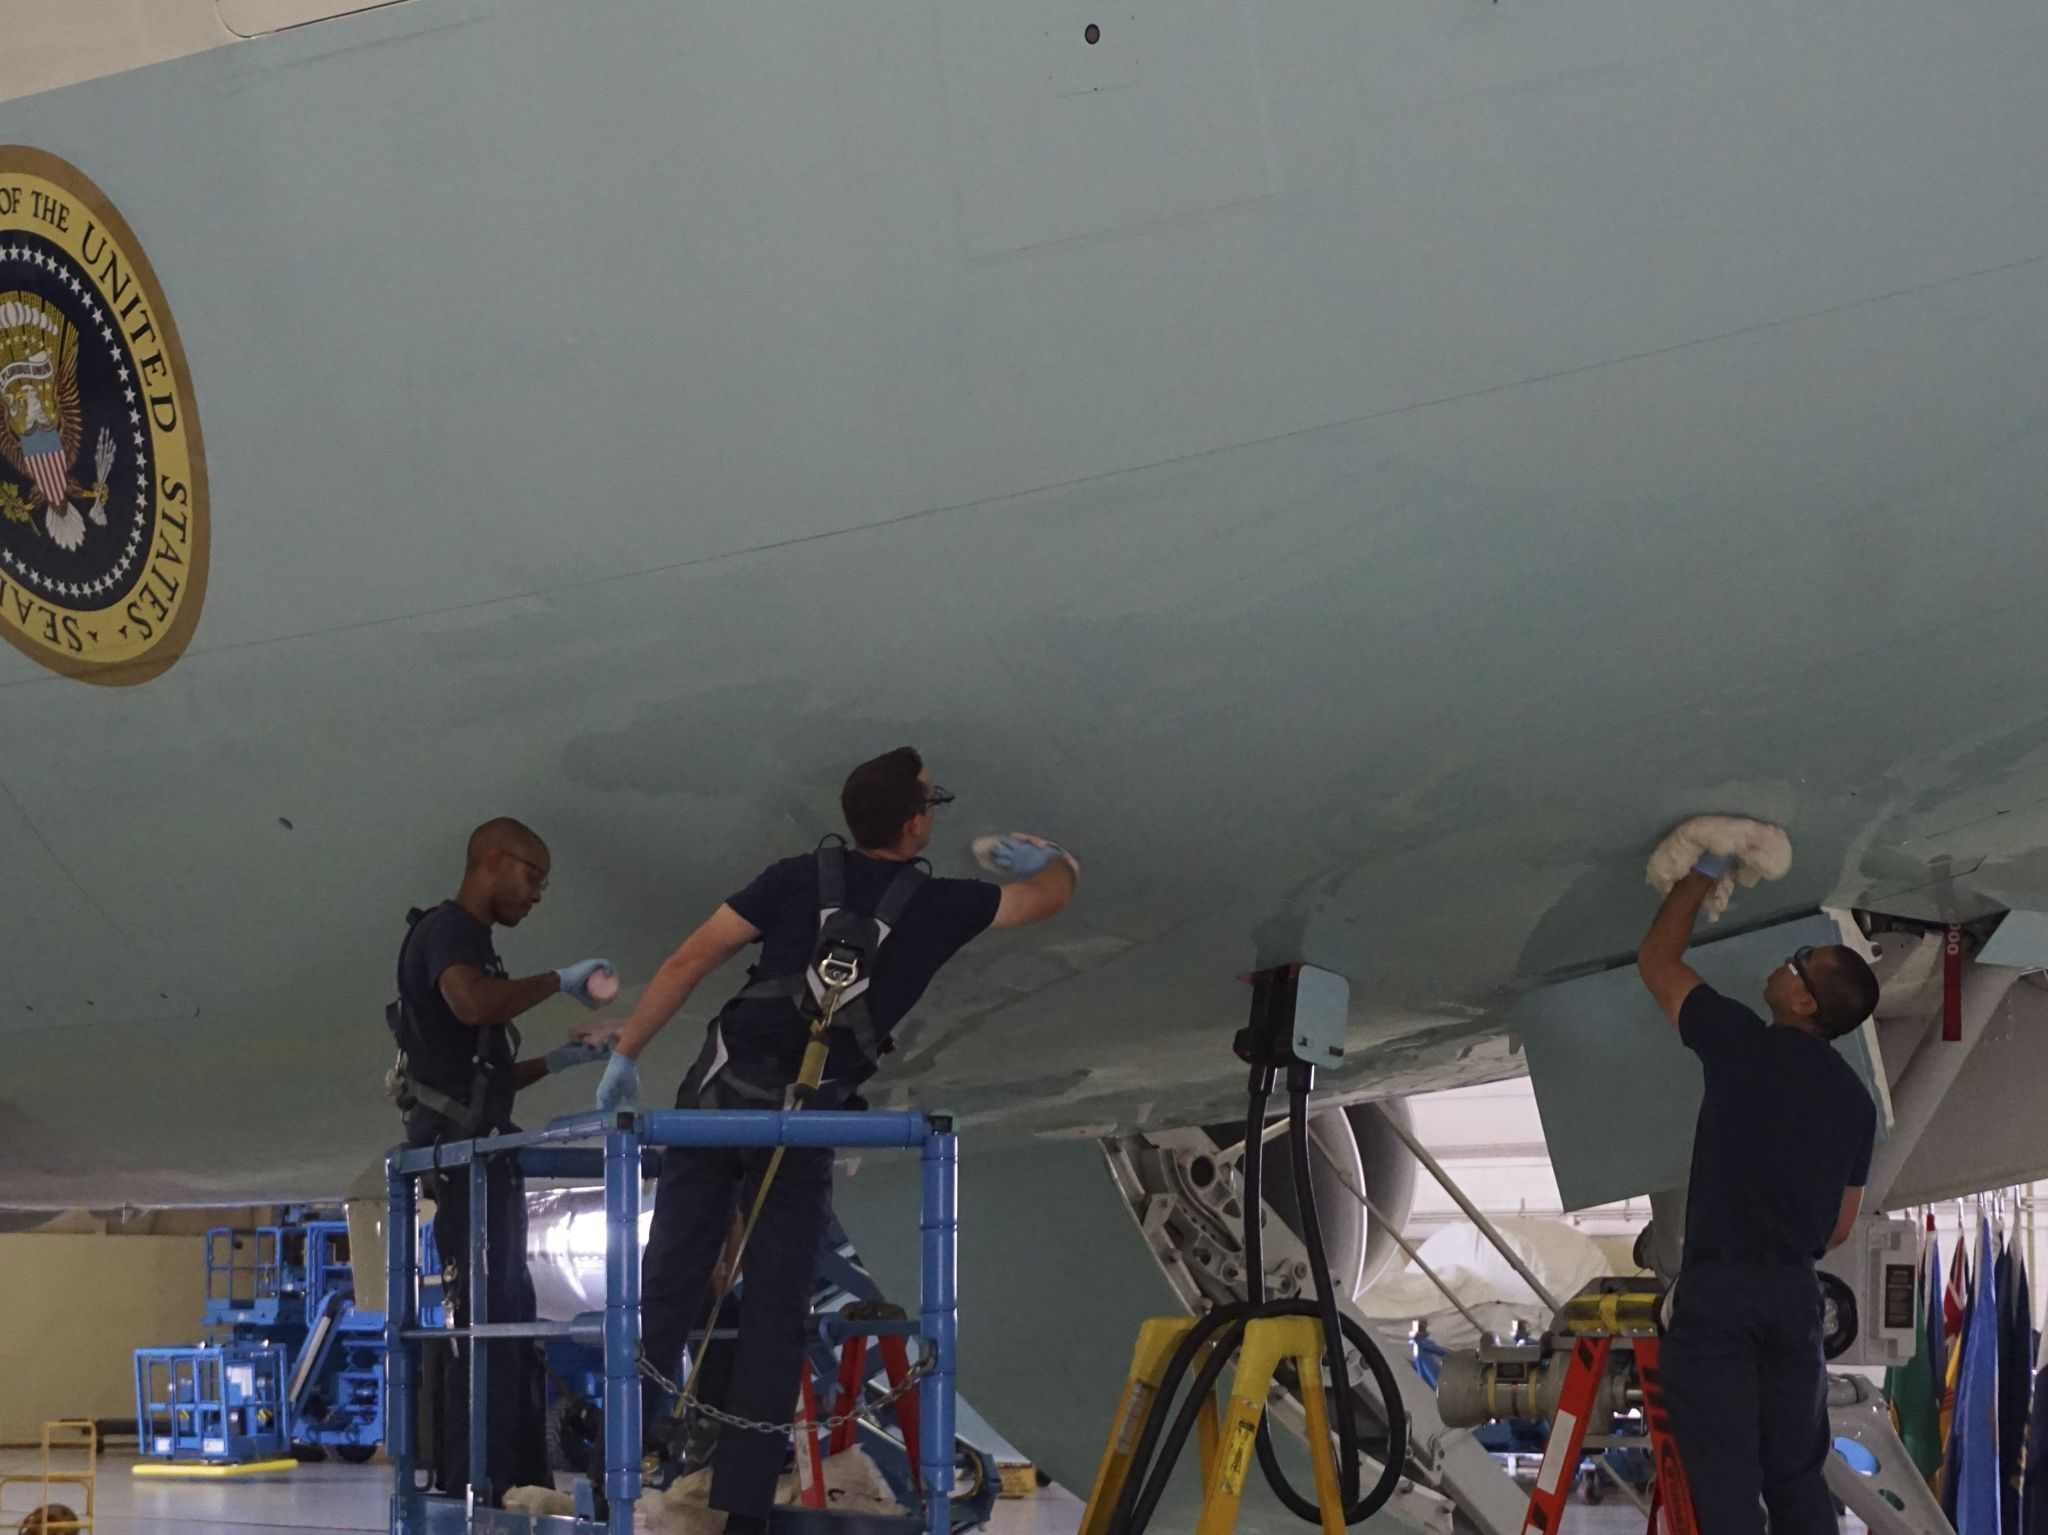 The outside of Air Force One is cleaned while at Joint Base Andrews. This image is from New Air... [Photo of the day - February 2021]